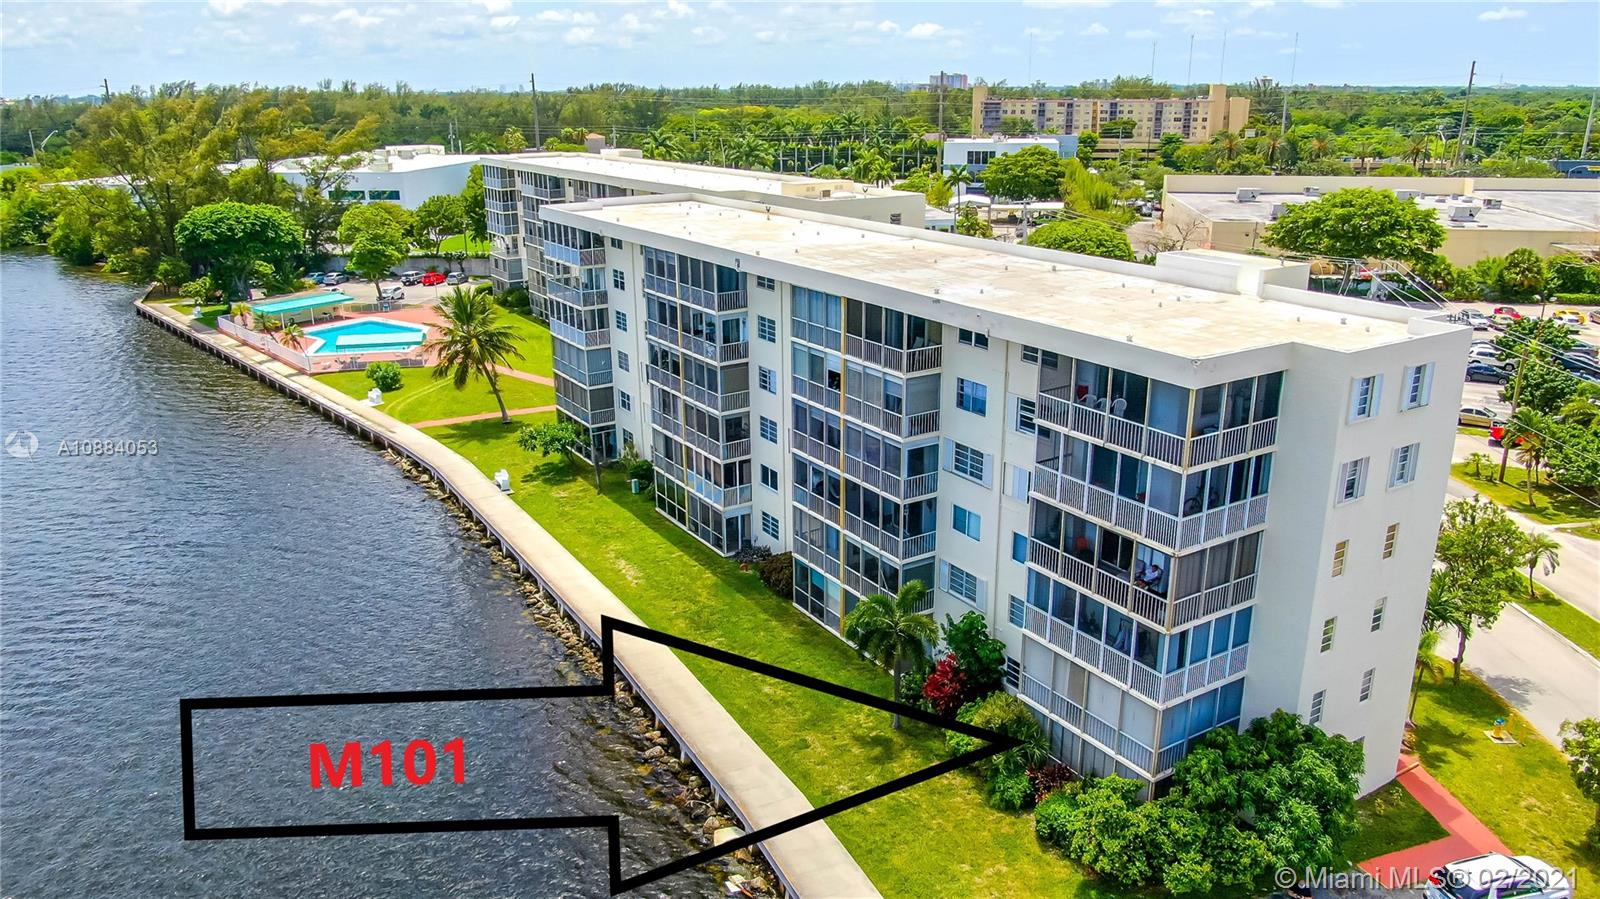 2910  Point East Dr #M101 For Sale A10884053, FL